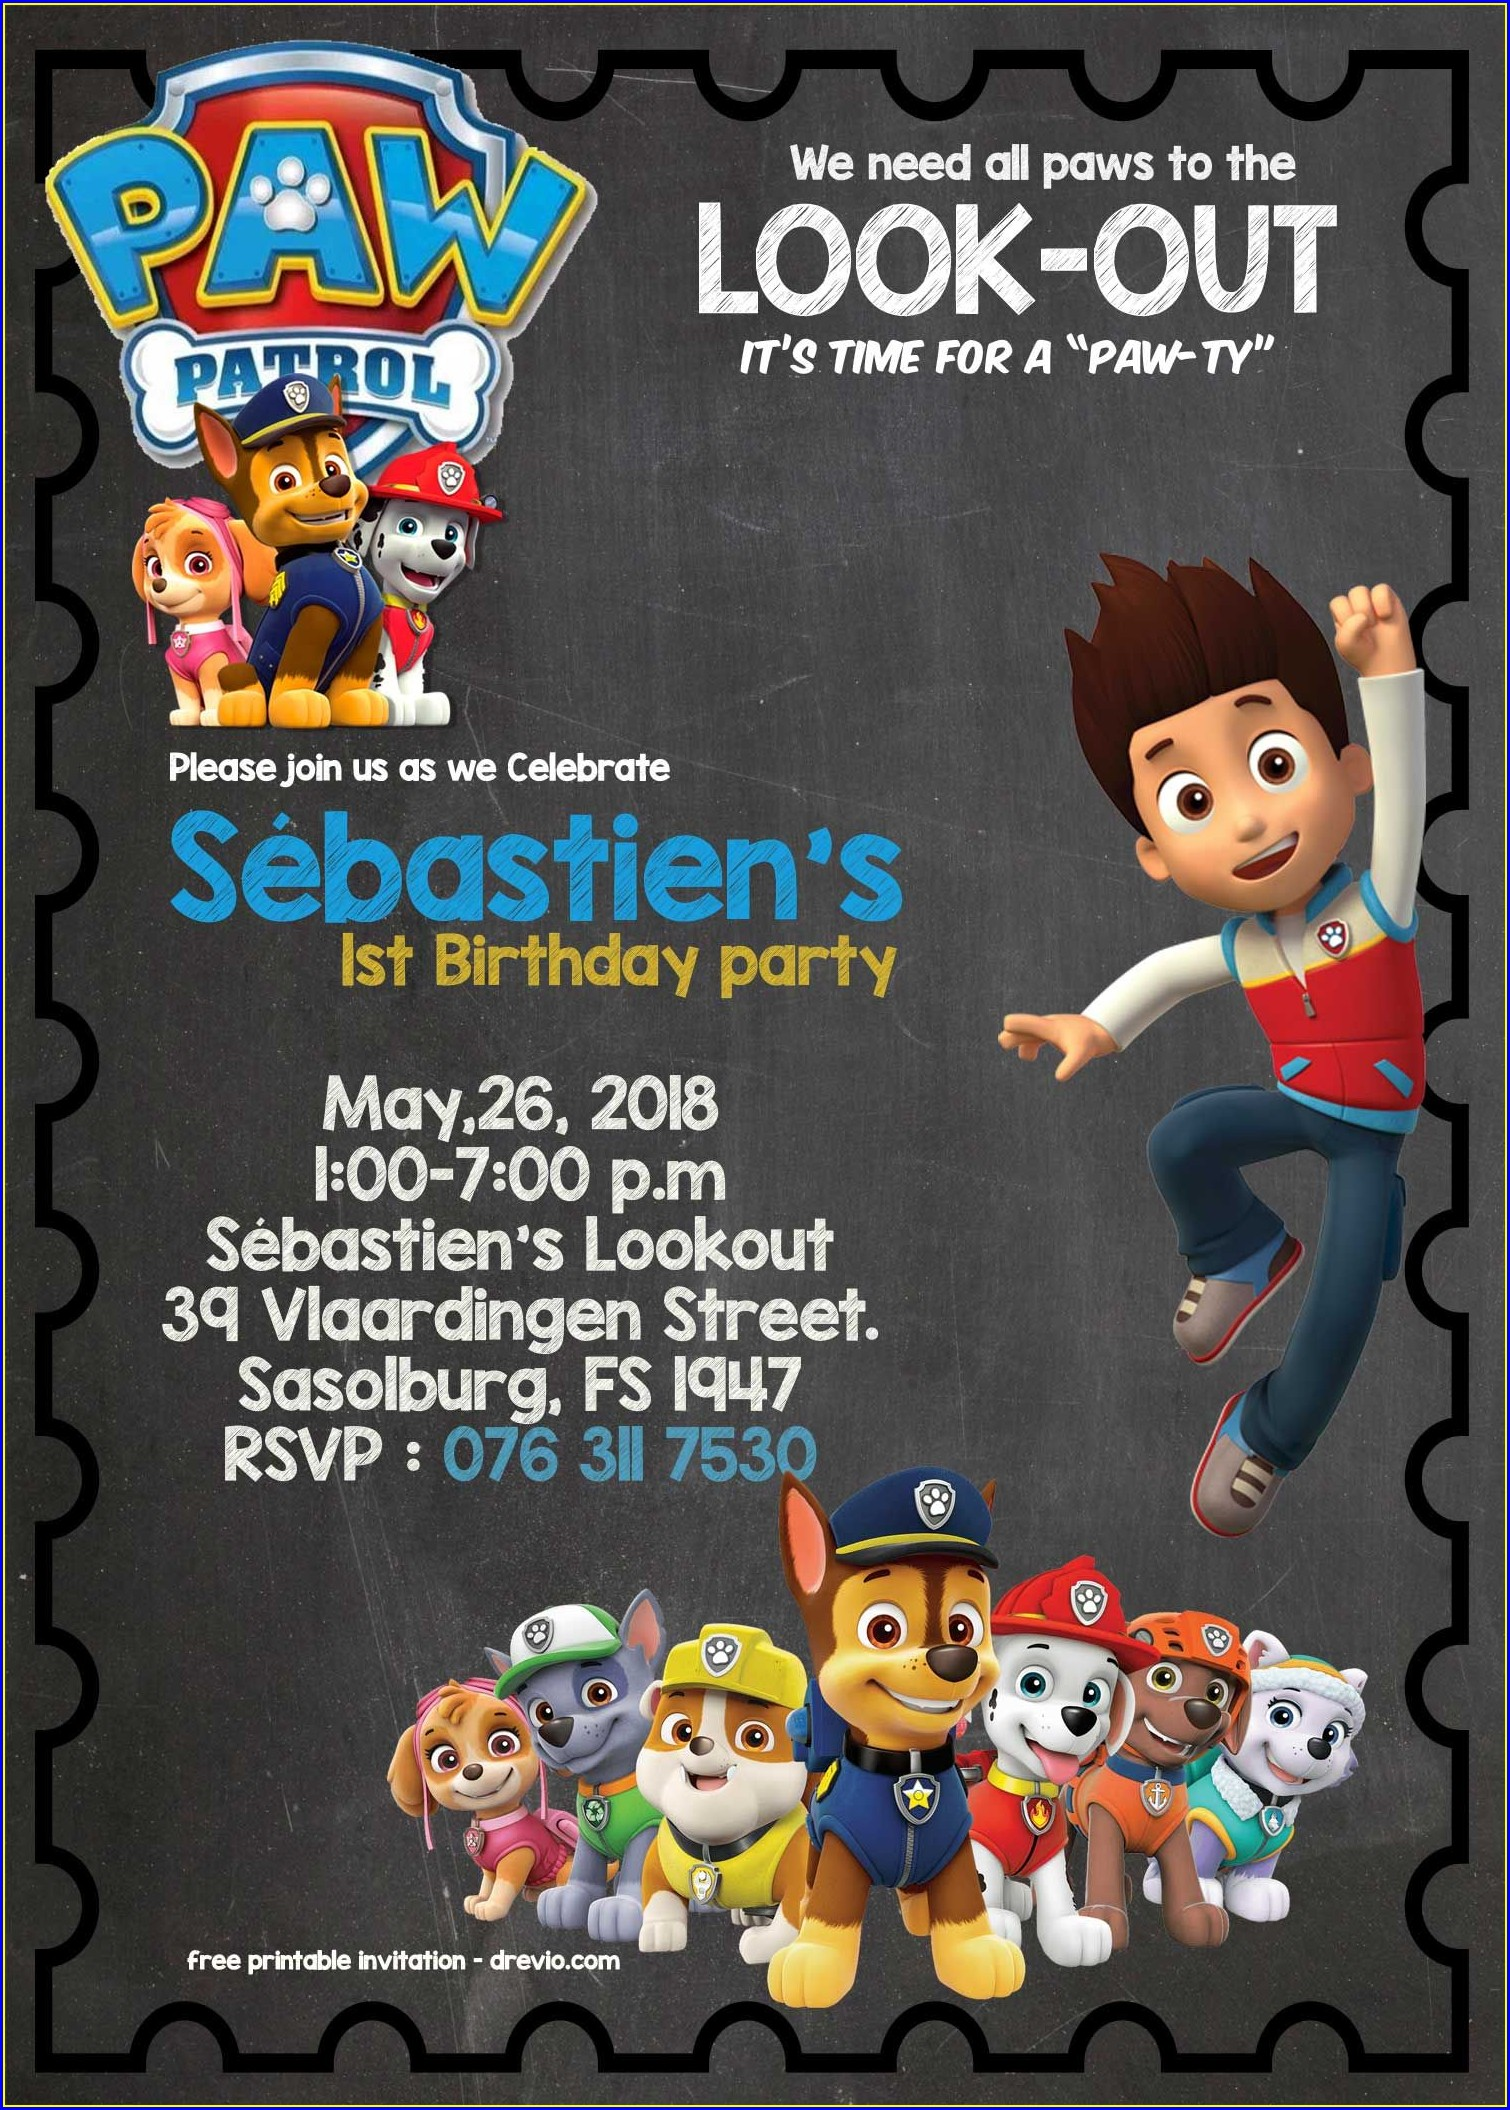 Downloadable Paw Patrol Printable Invitations